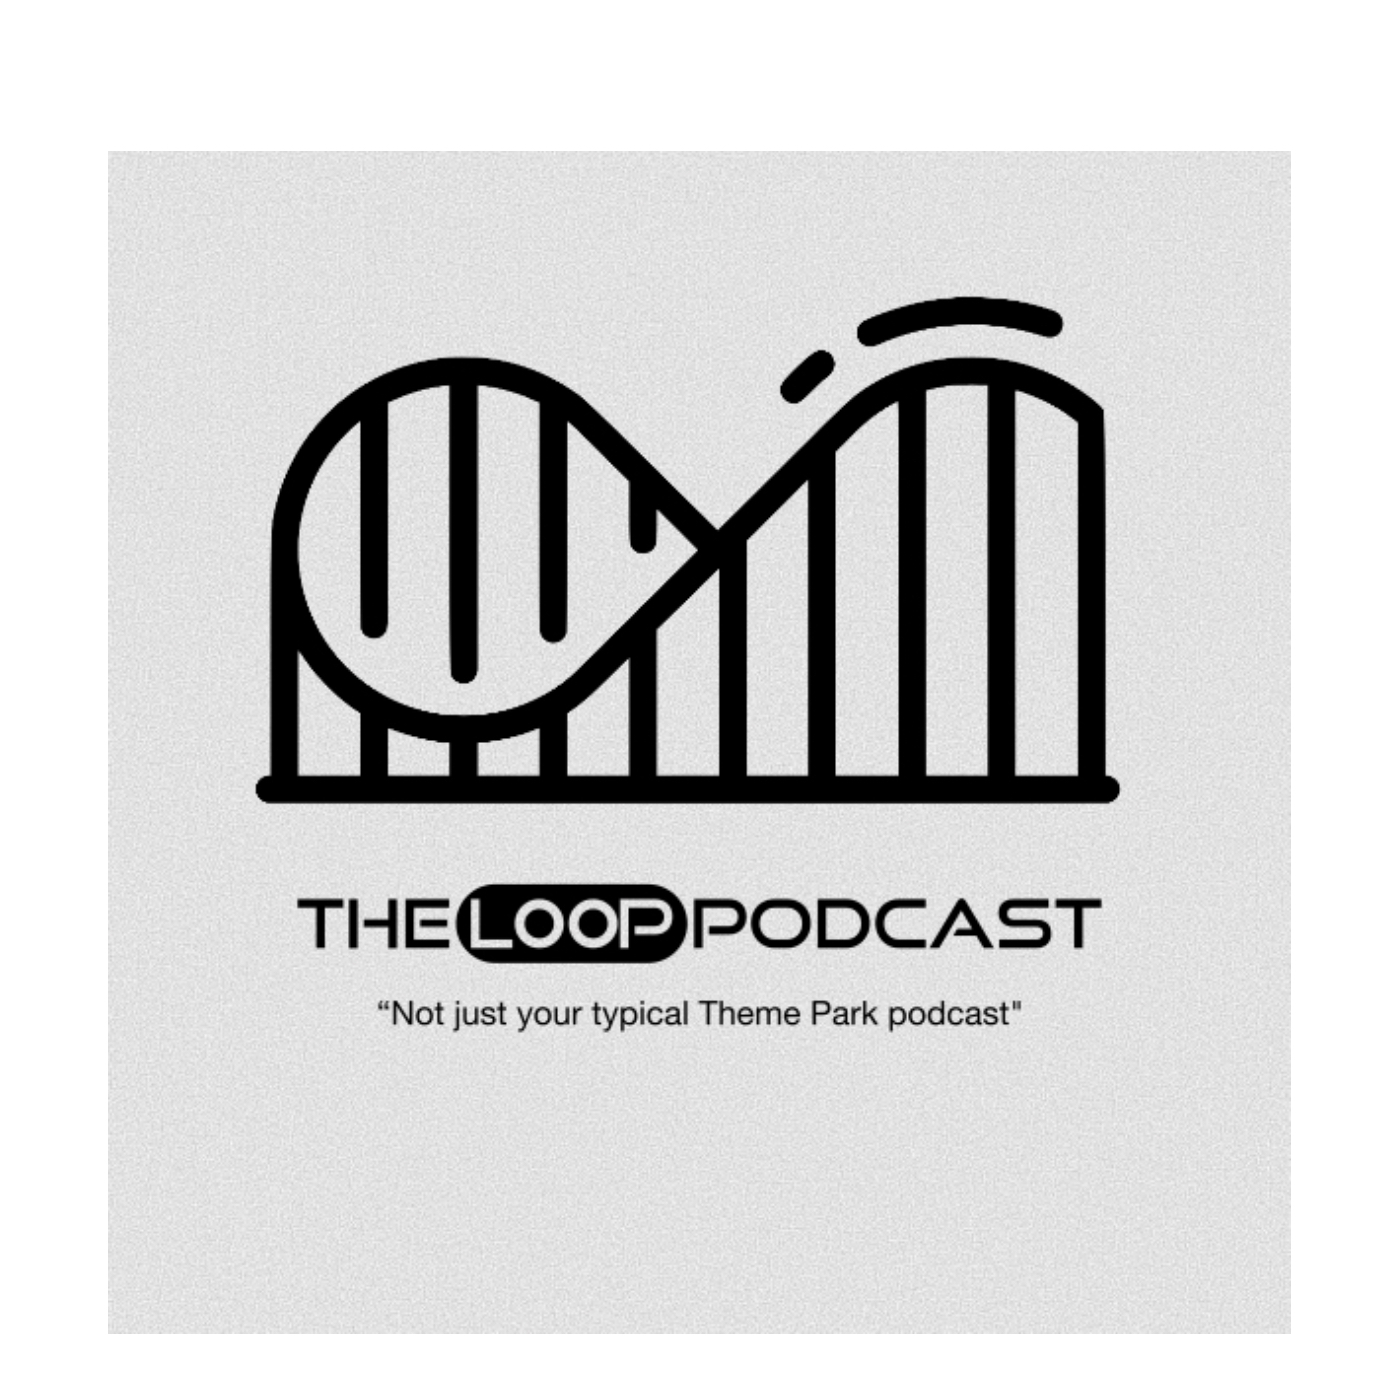 The Loop Podcast